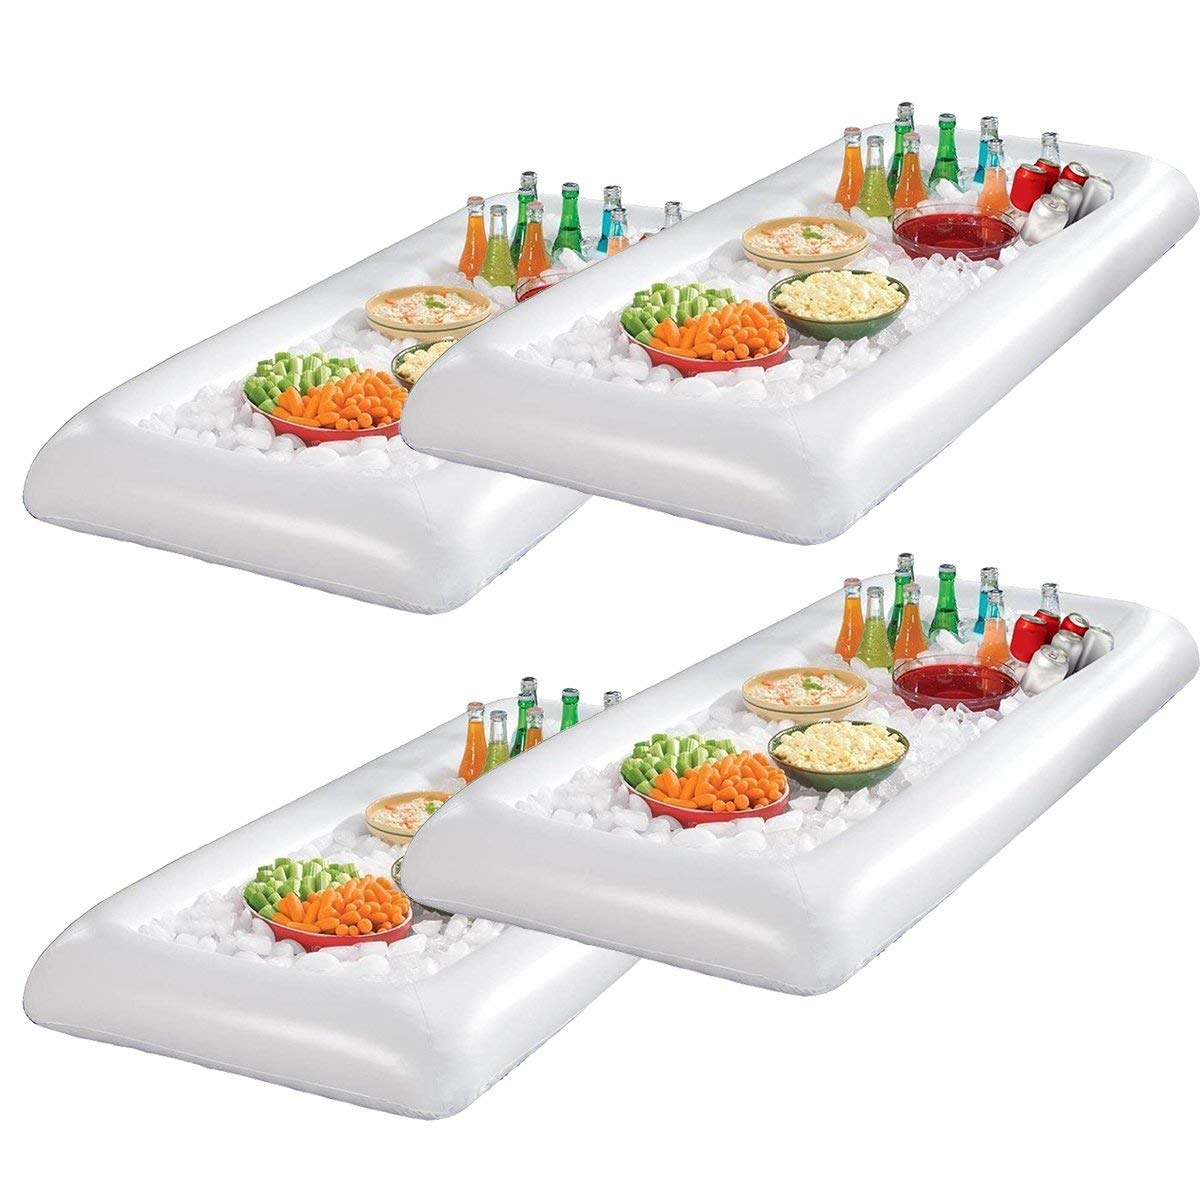 Infltable Buffet Serving & Salad Bar Ice Buckets Food Cooler Inflatable Beer Drink Tray,Food Drink Holder BBQ Picnic Pool,with Drain Plug (4 Pack)